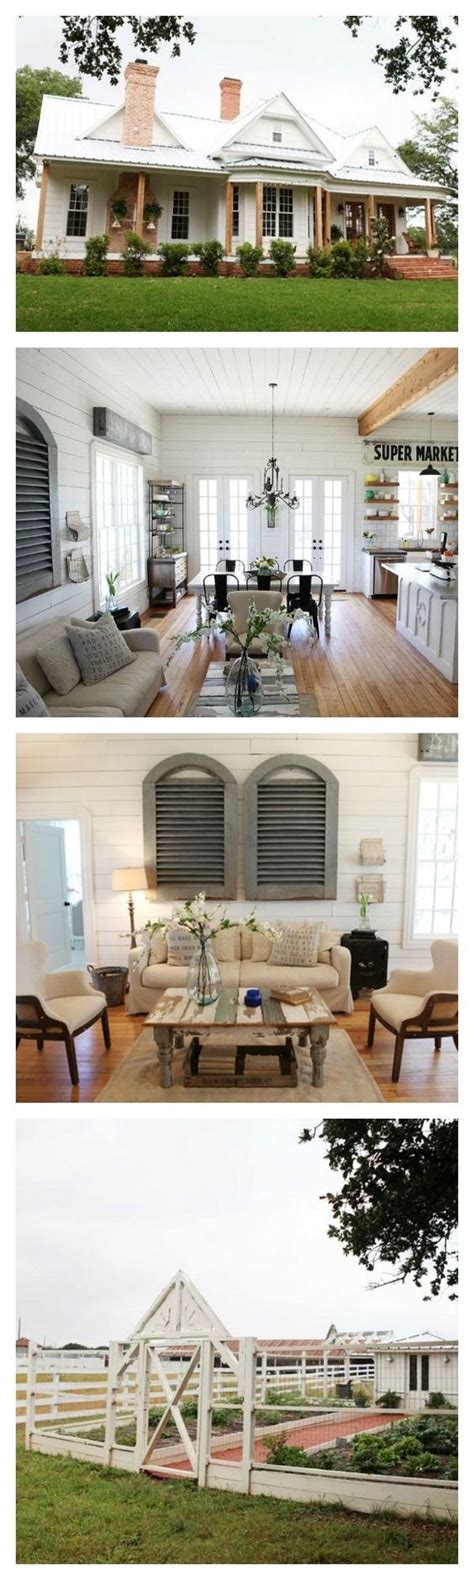 chip and joanna gaines tour schedule tour chip and joanna gaines farmhouse like you ve never seen it before beautiful like you